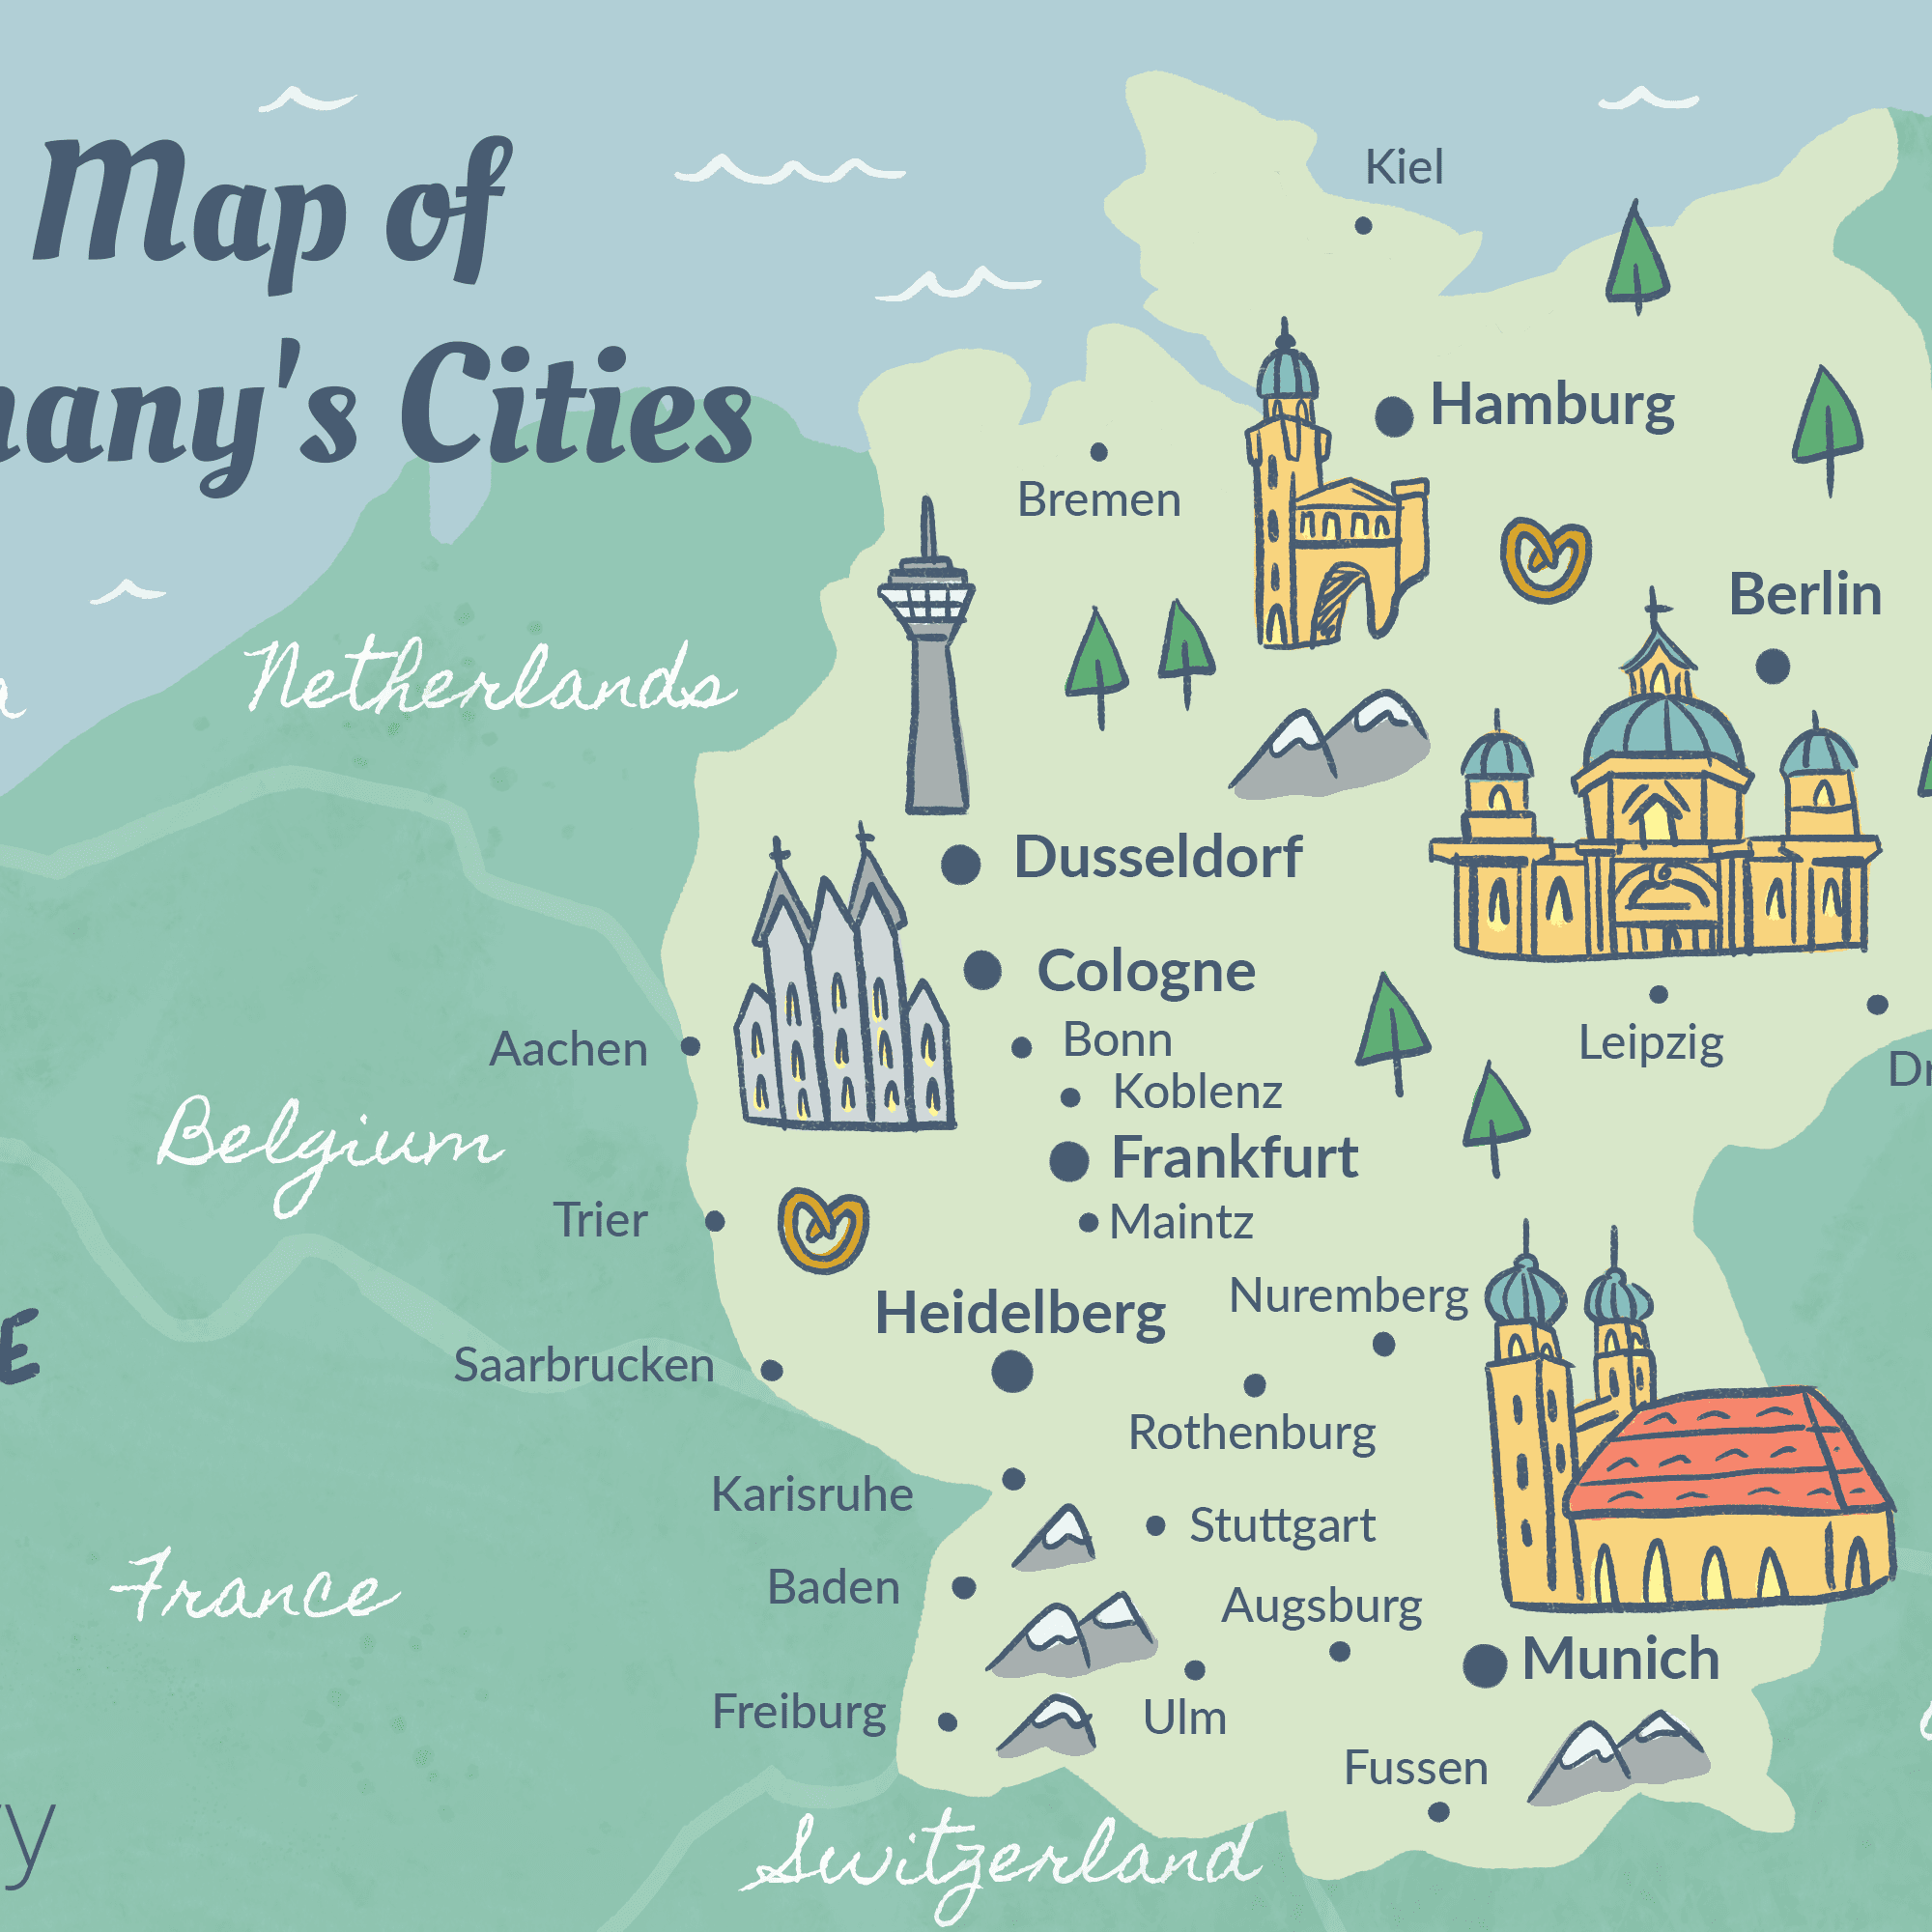 Map Of Germany Mountains.Germany Cities Map And Travel Guide